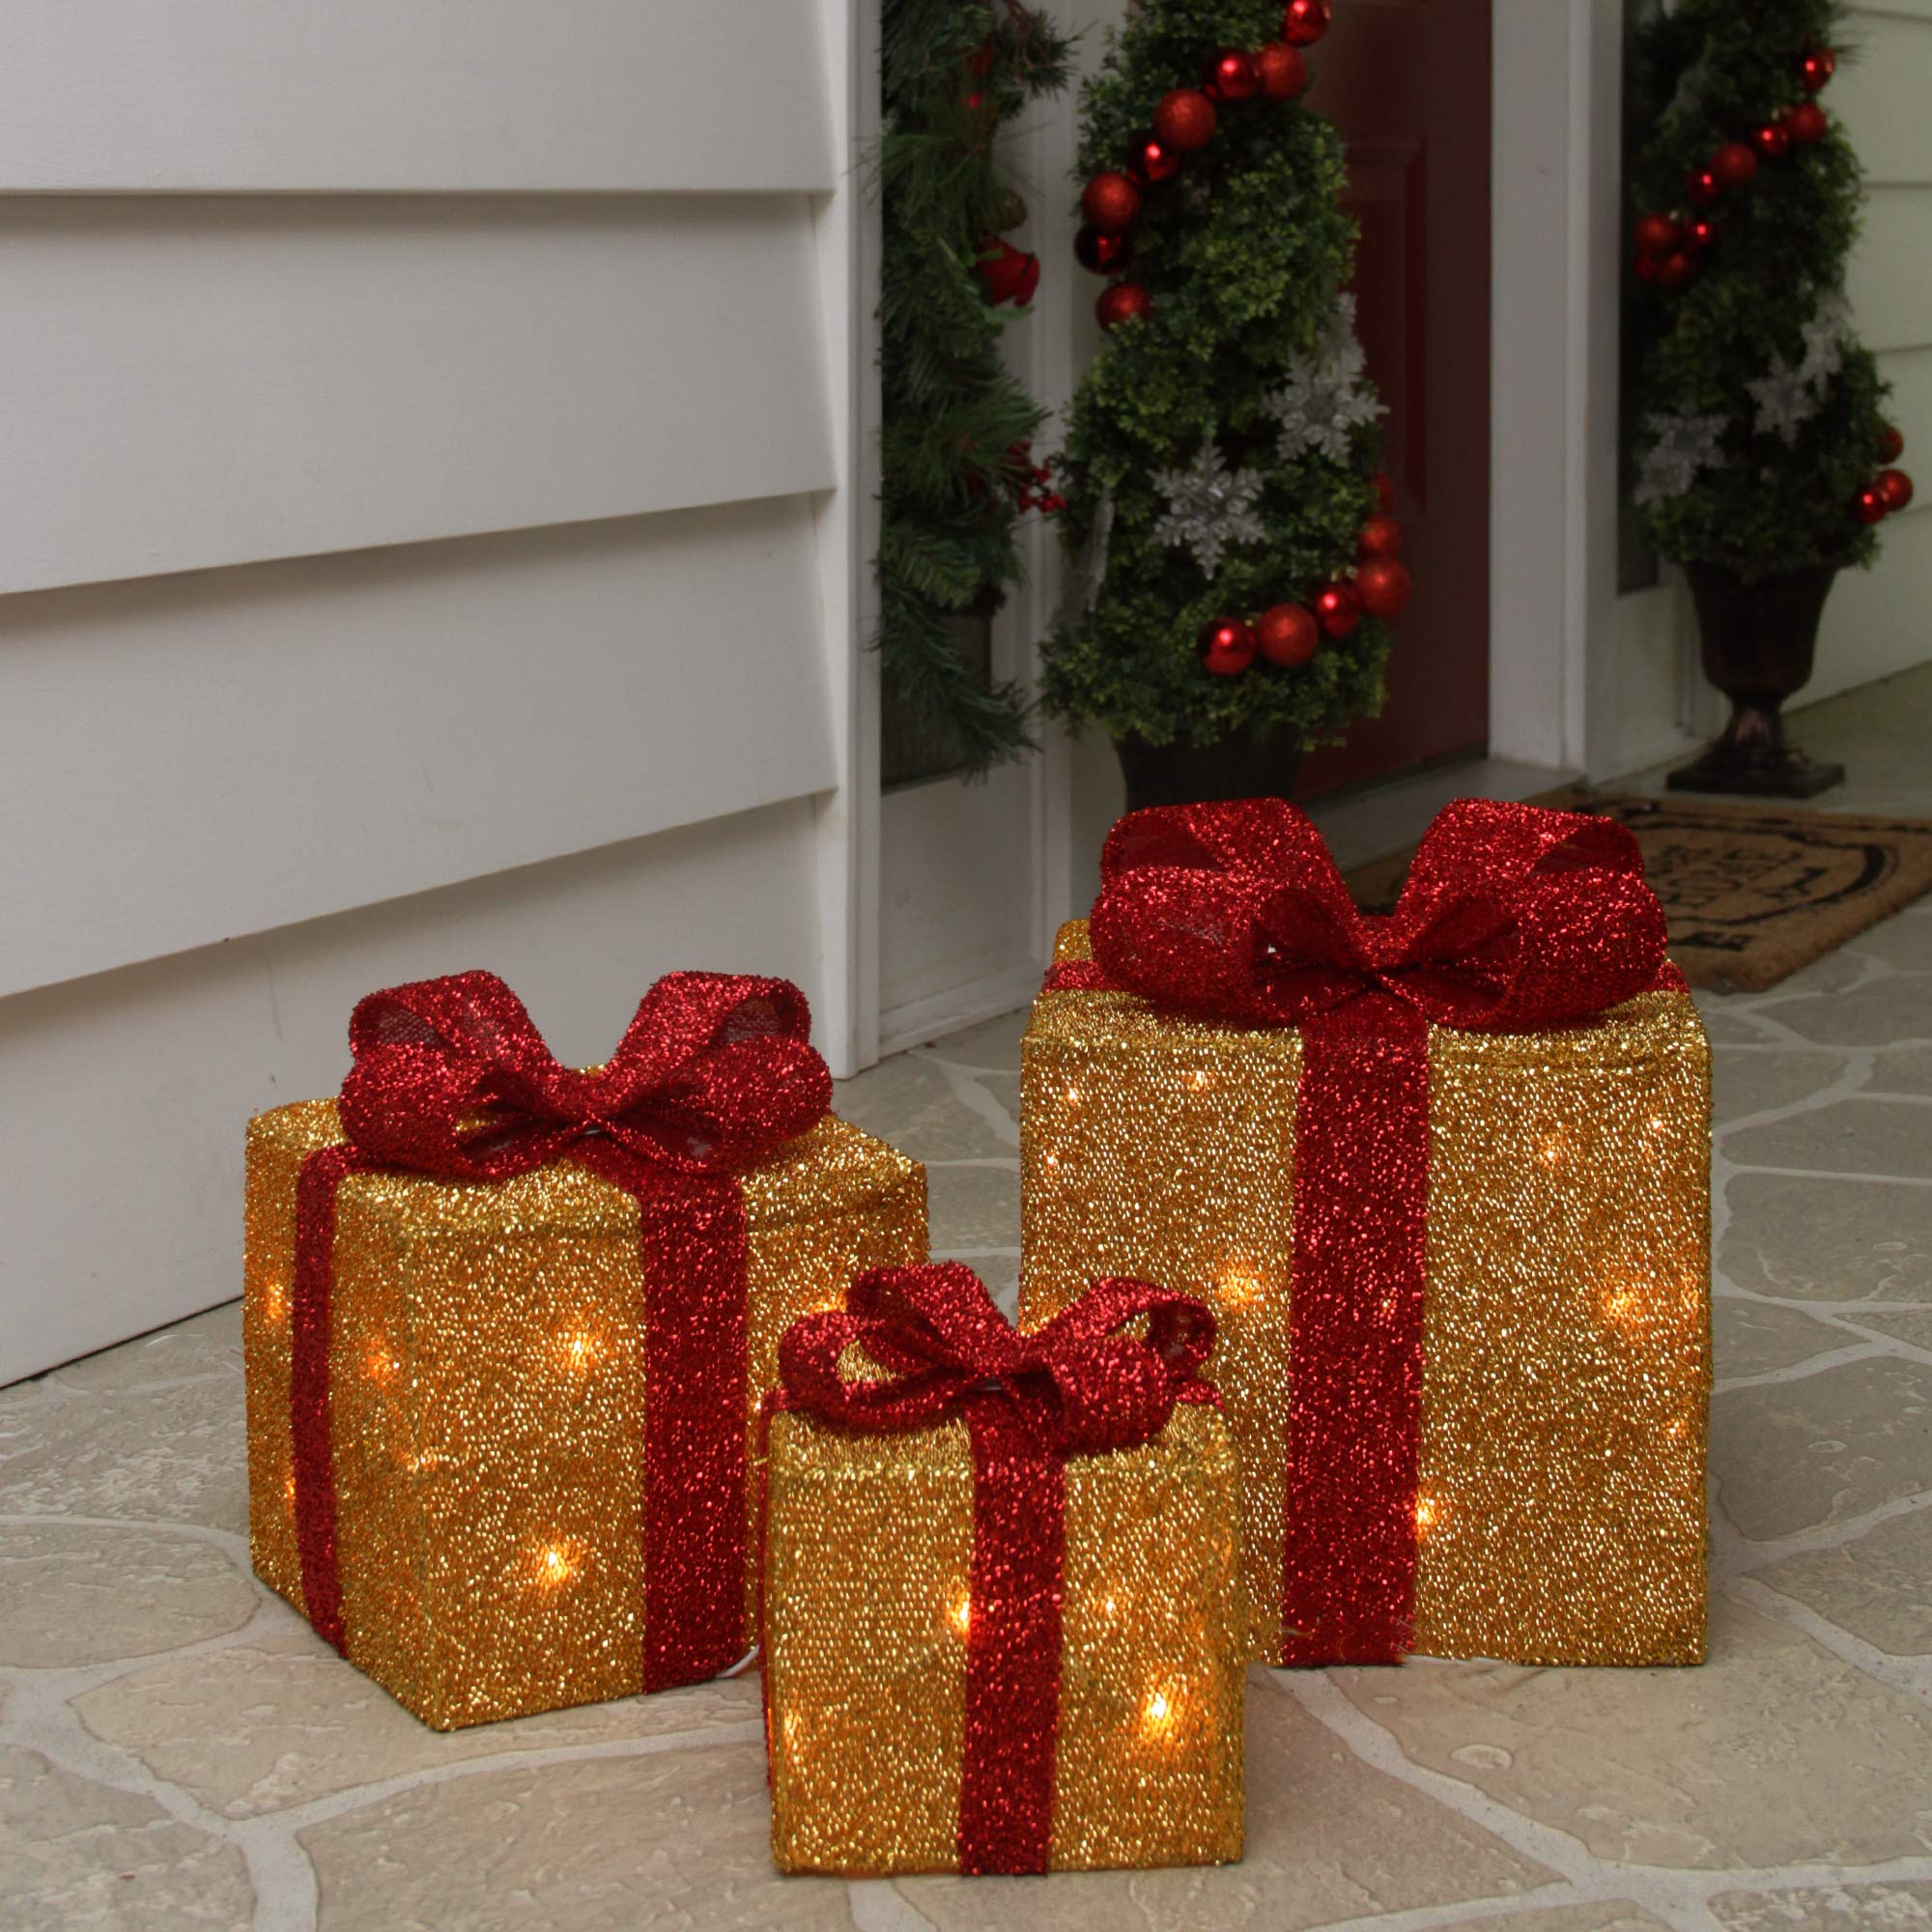 Northlight Set of 3 Gold Tinsel Gift Boxes with Red Bows Lighted Christmas Outdoor Decorations by Northlight (Image #3)